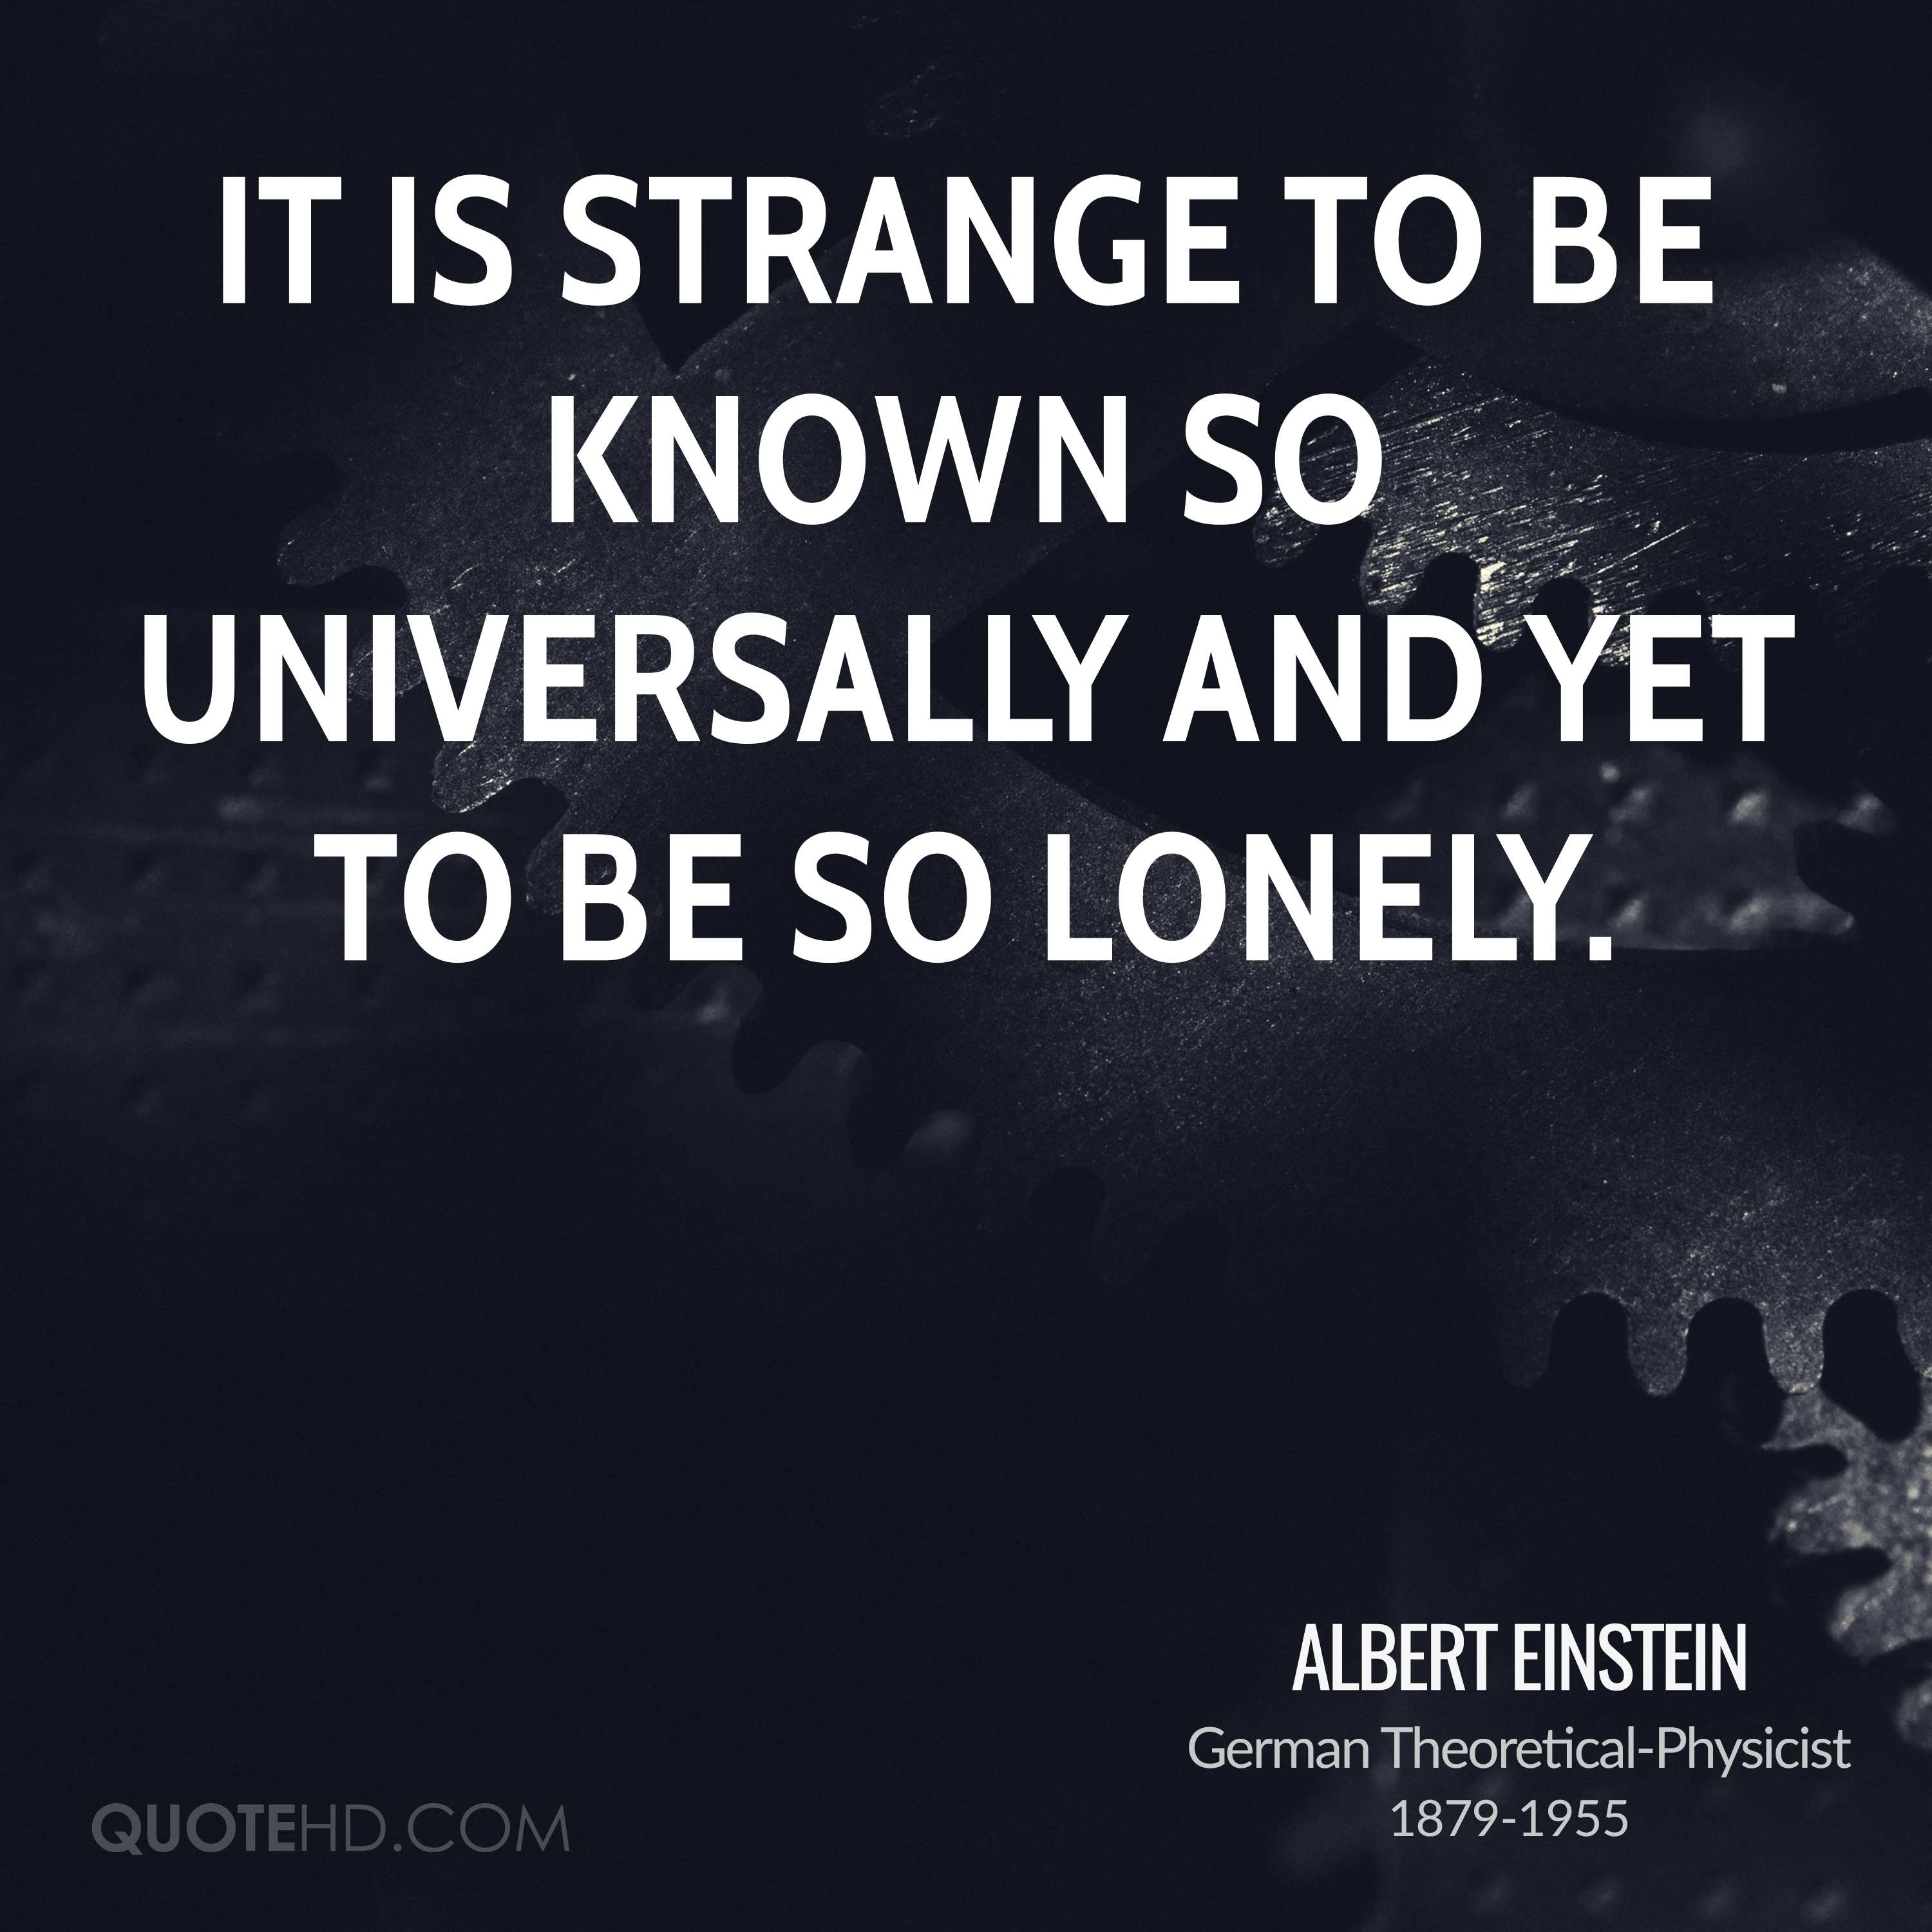 It is strange to be known so universally and yet to be so lonely.